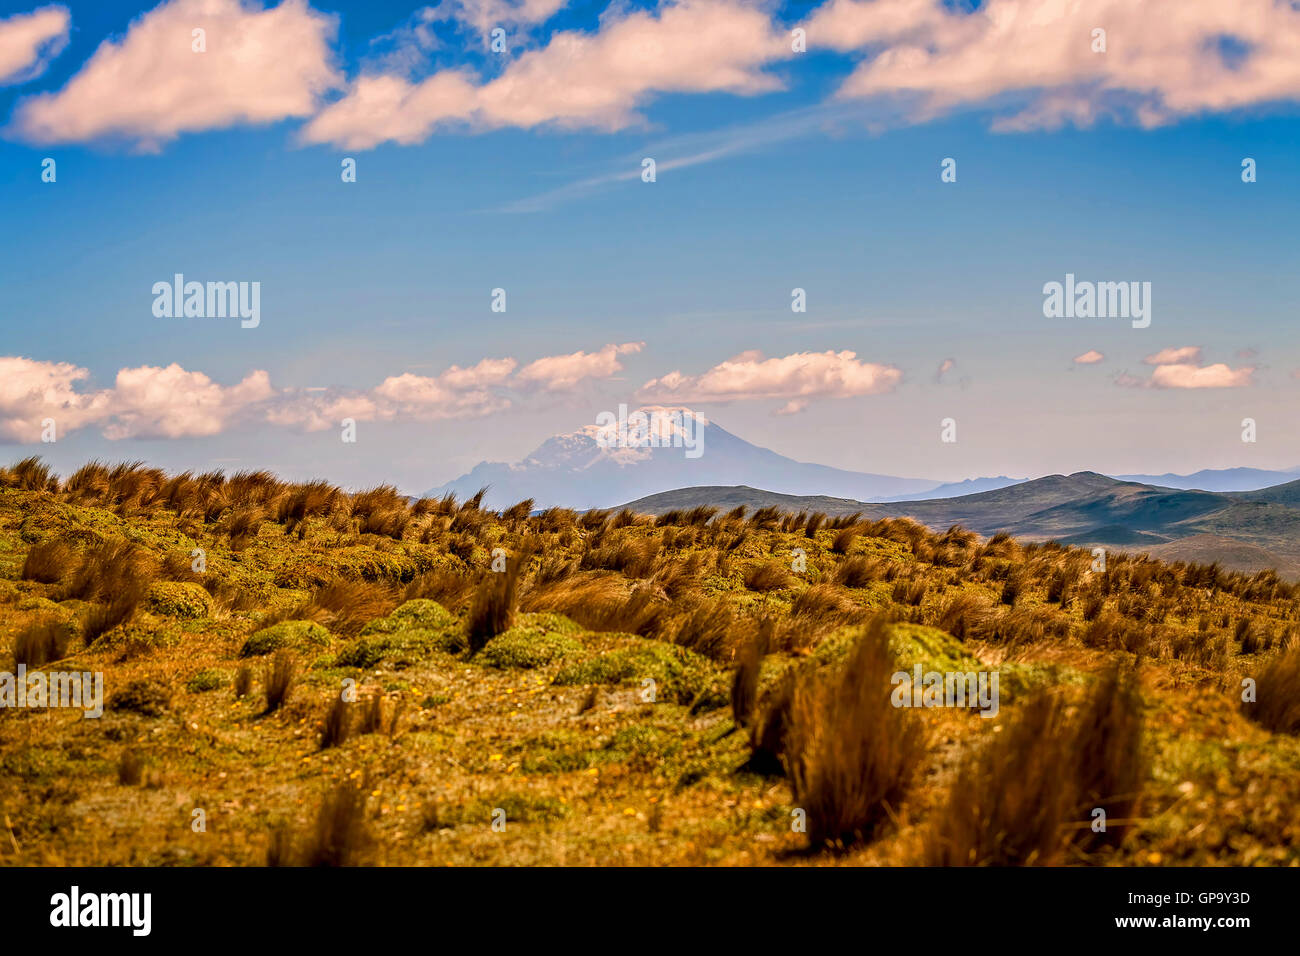 National Park Cotopaxi Landscape, Ecuador, South America - Stock Image